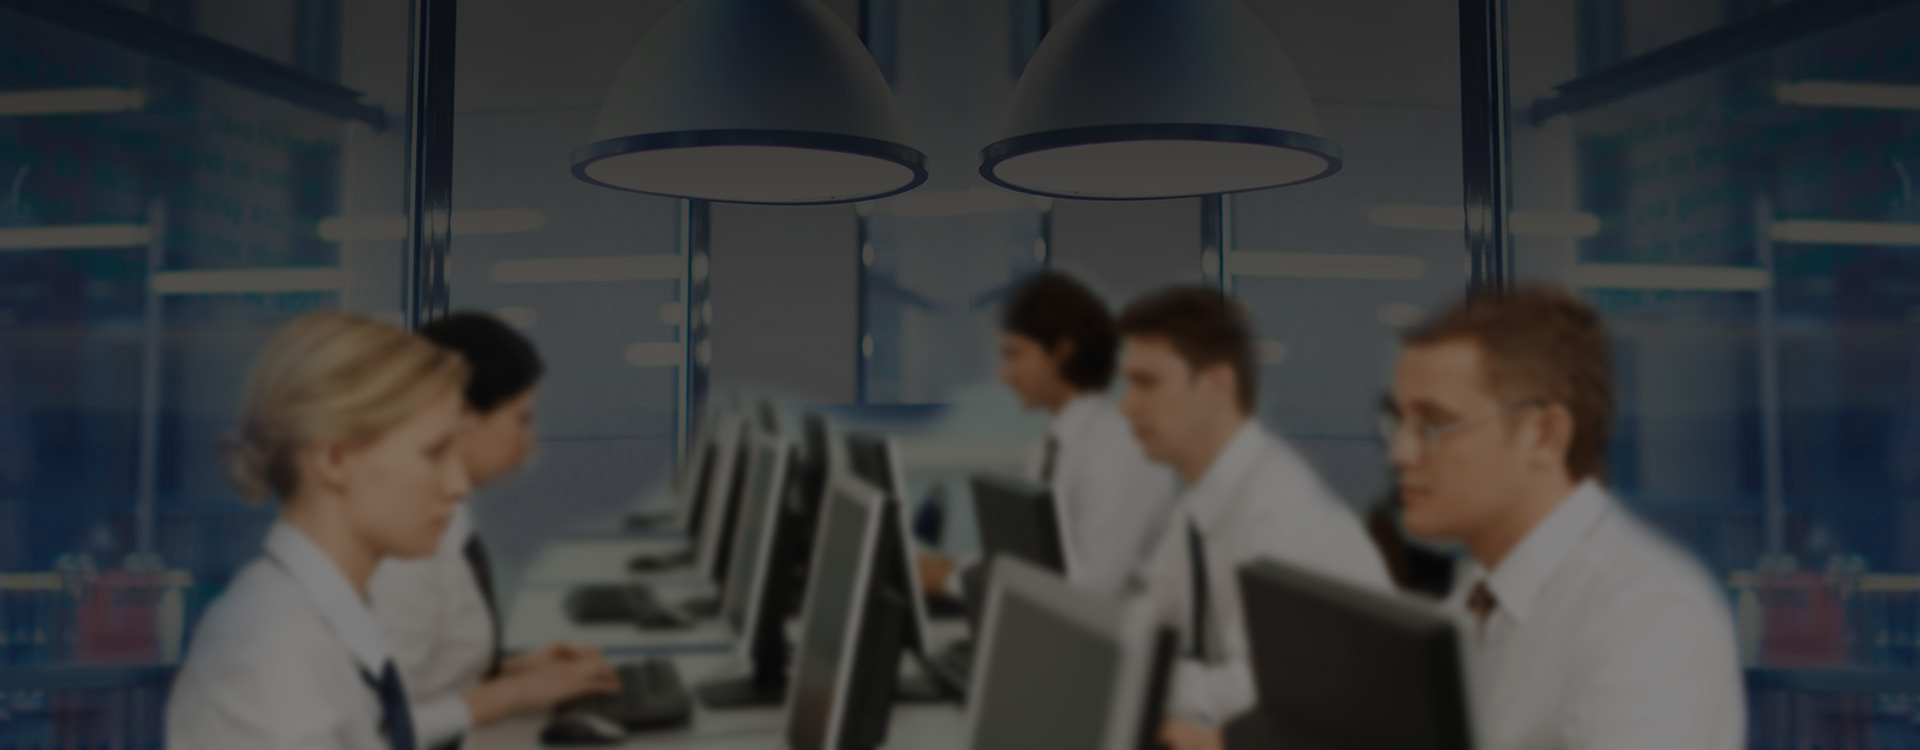 Advisewise-Solutions-Banner3